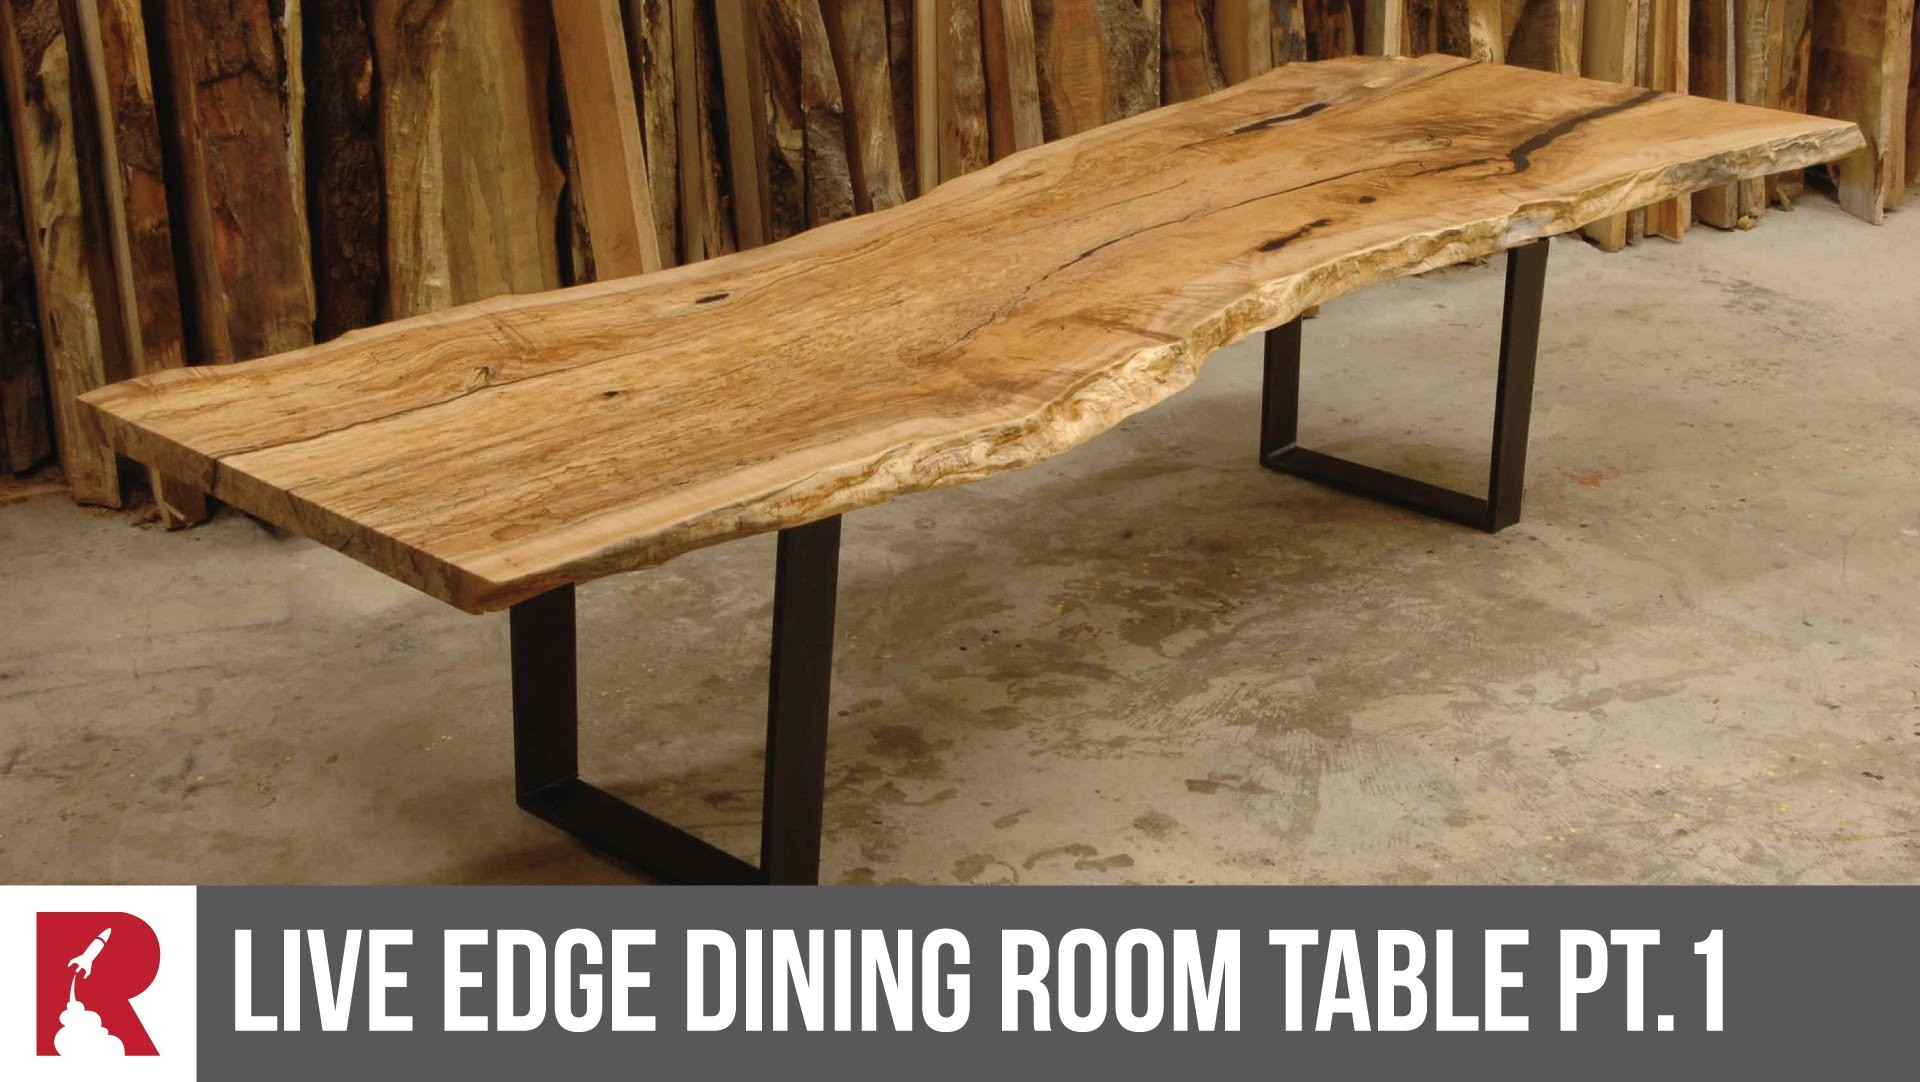 Making a Live Edge Dining Table Part 1 Rocket Design Furniture My Crafts a